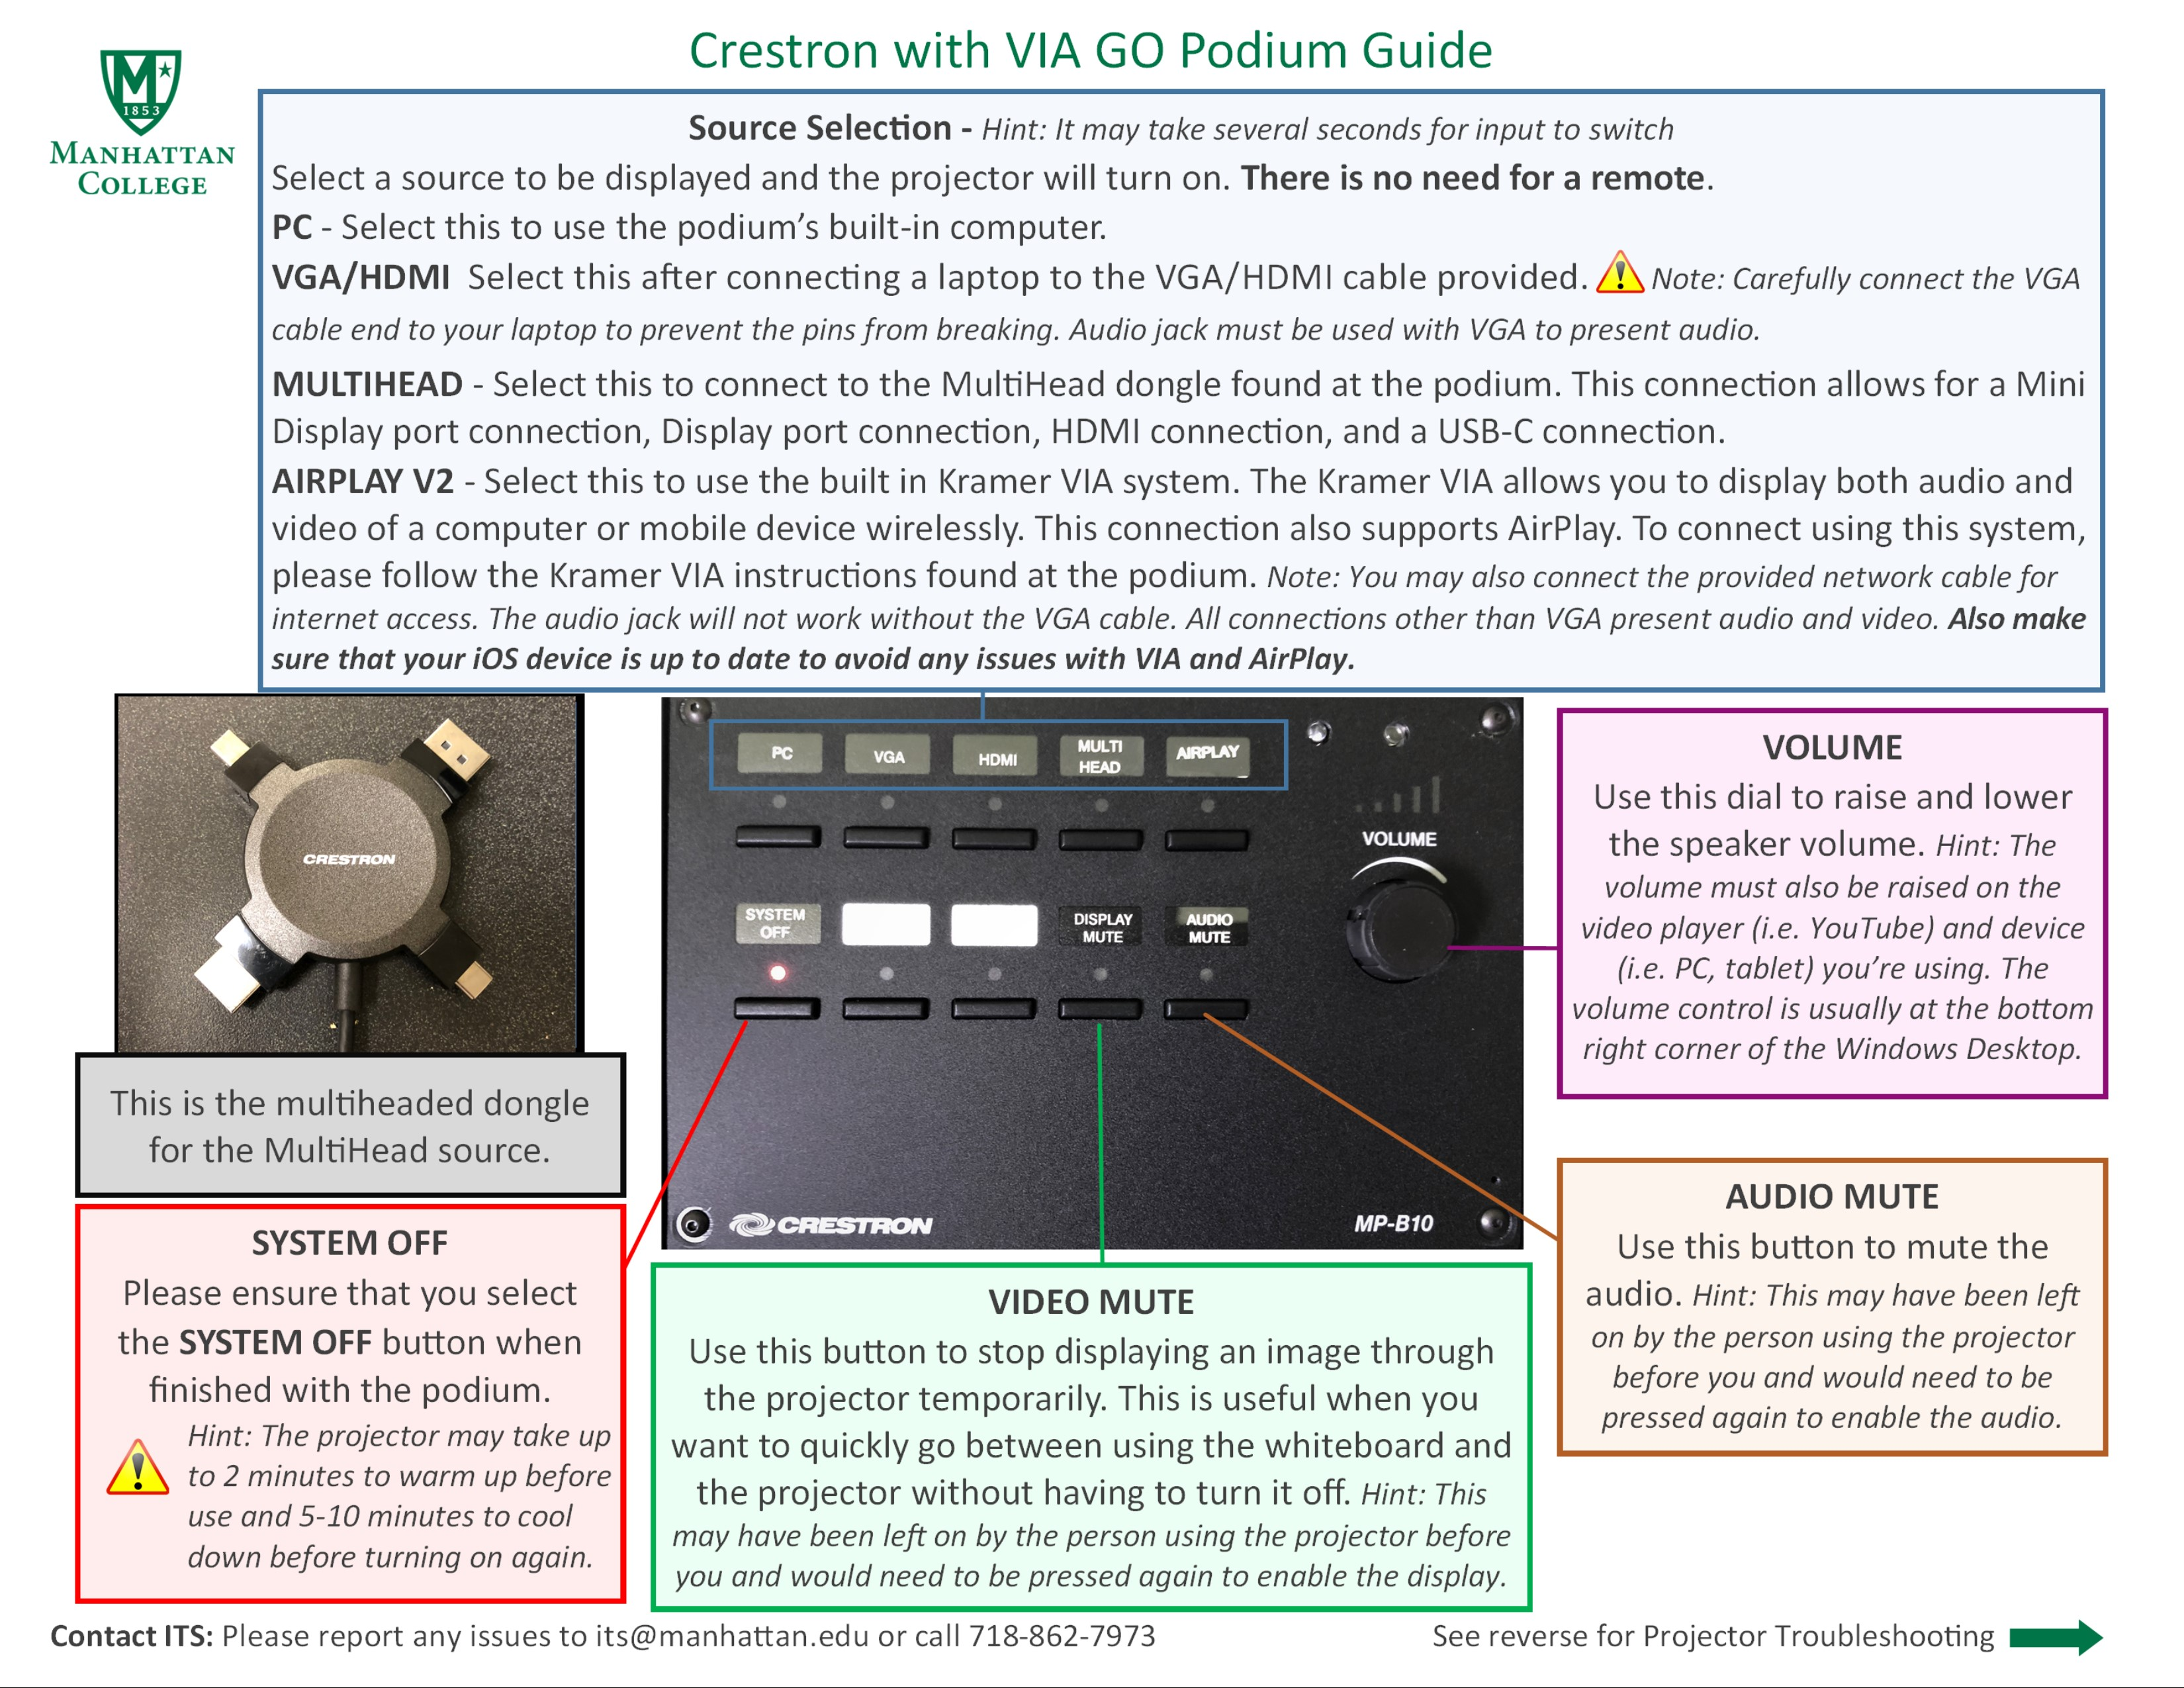 image depicting the crestron control unit podium guide with the kramer system